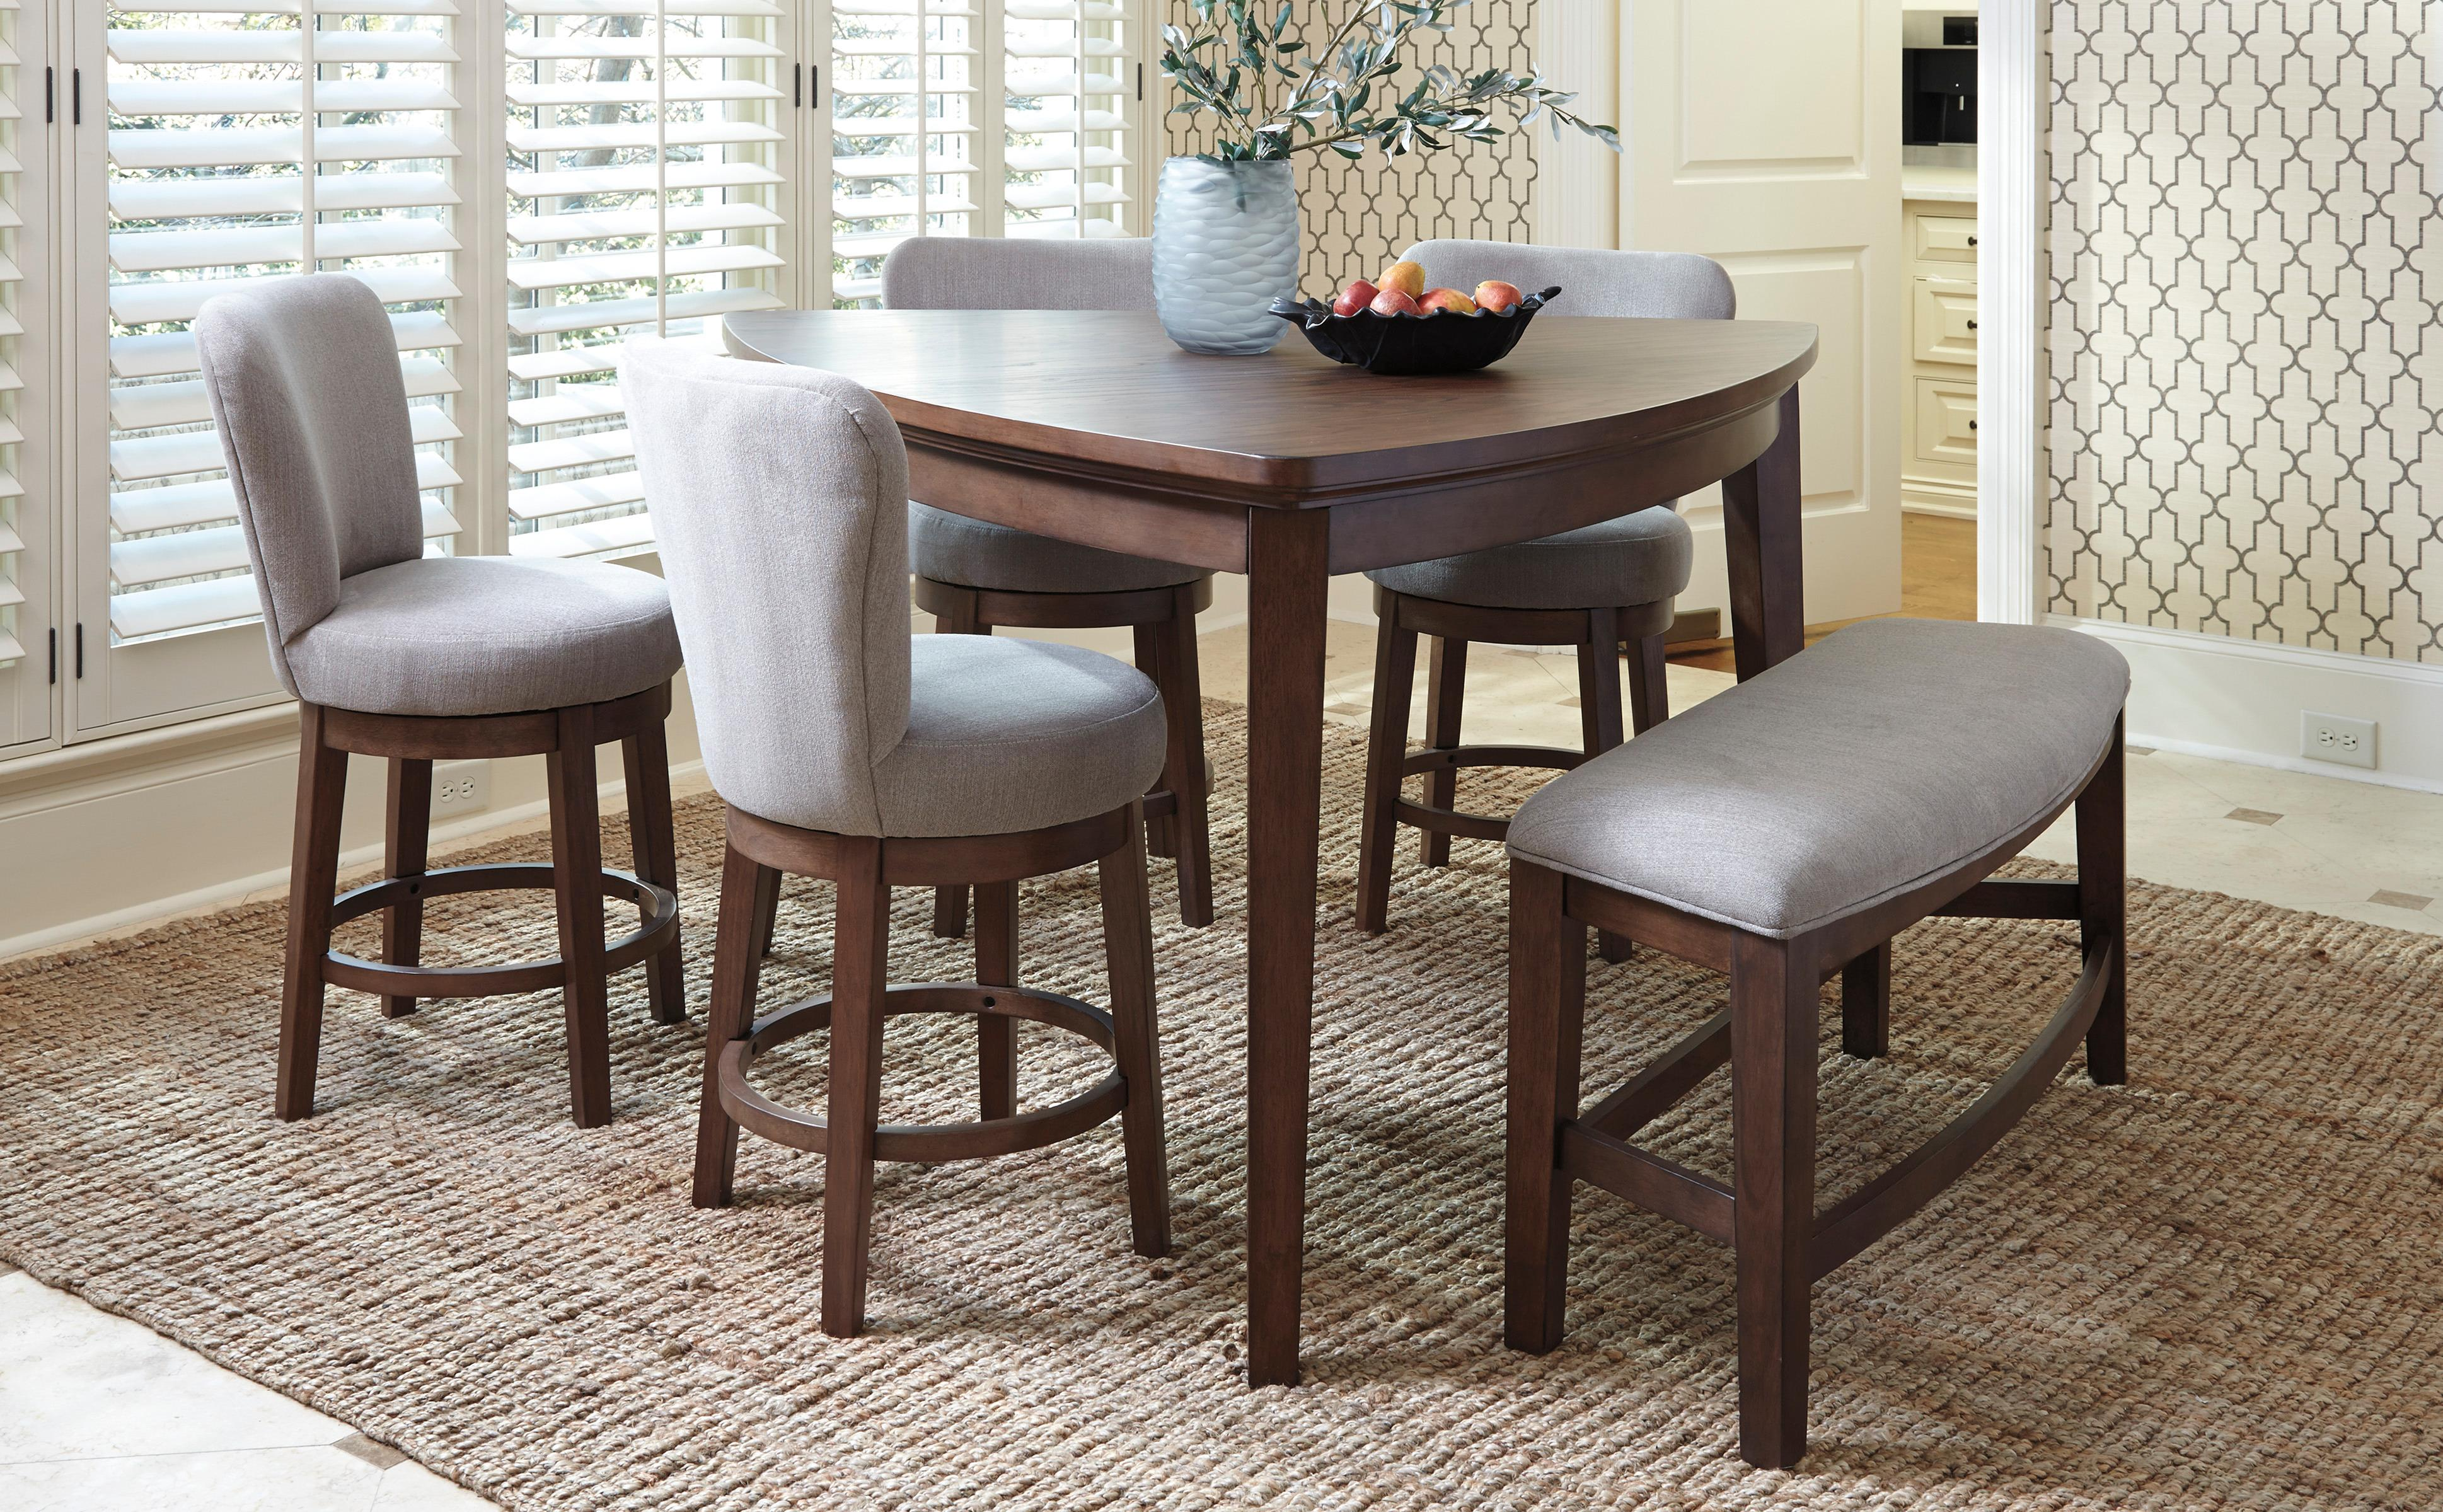 """March to the beat of your own drum with the Mardinny dining room counter height table. """"Guitar pick"""" shape strikes just the right note and wows from every angle. Counter height design makes eating in feel like dining out at your favorite pub. The cozy shape doubles as a card table and brings family game night back in style."""